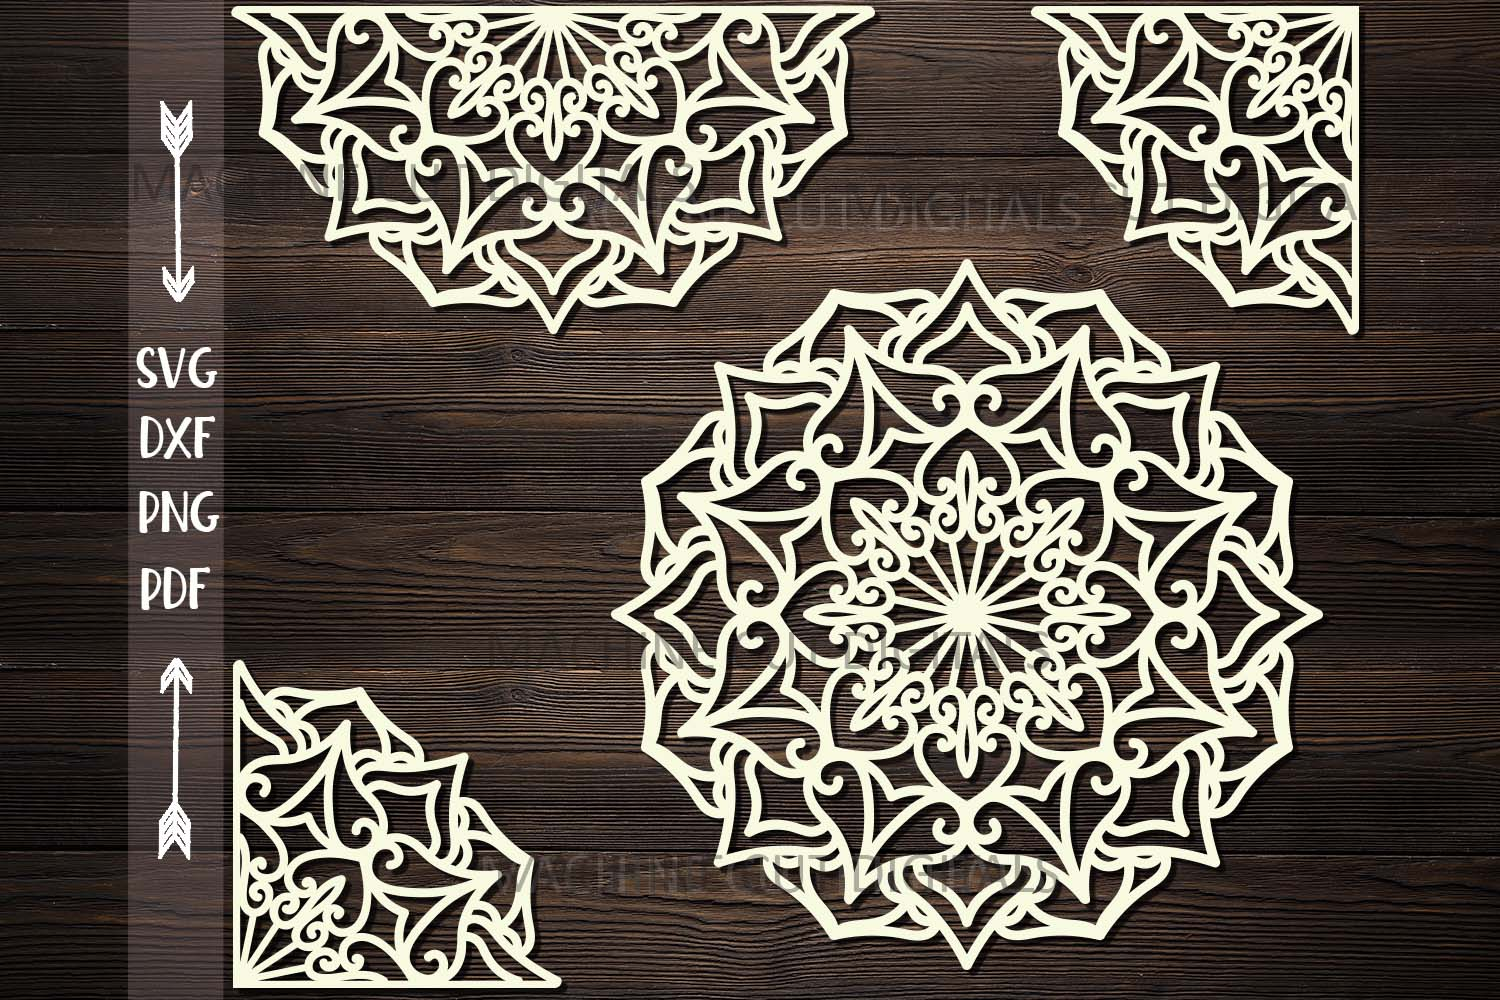 Download Free Mandala Set Half Corner Plotter Cut Svg Graphic By Cornelia for Cricut Explore, Silhouette and other cutting machines.